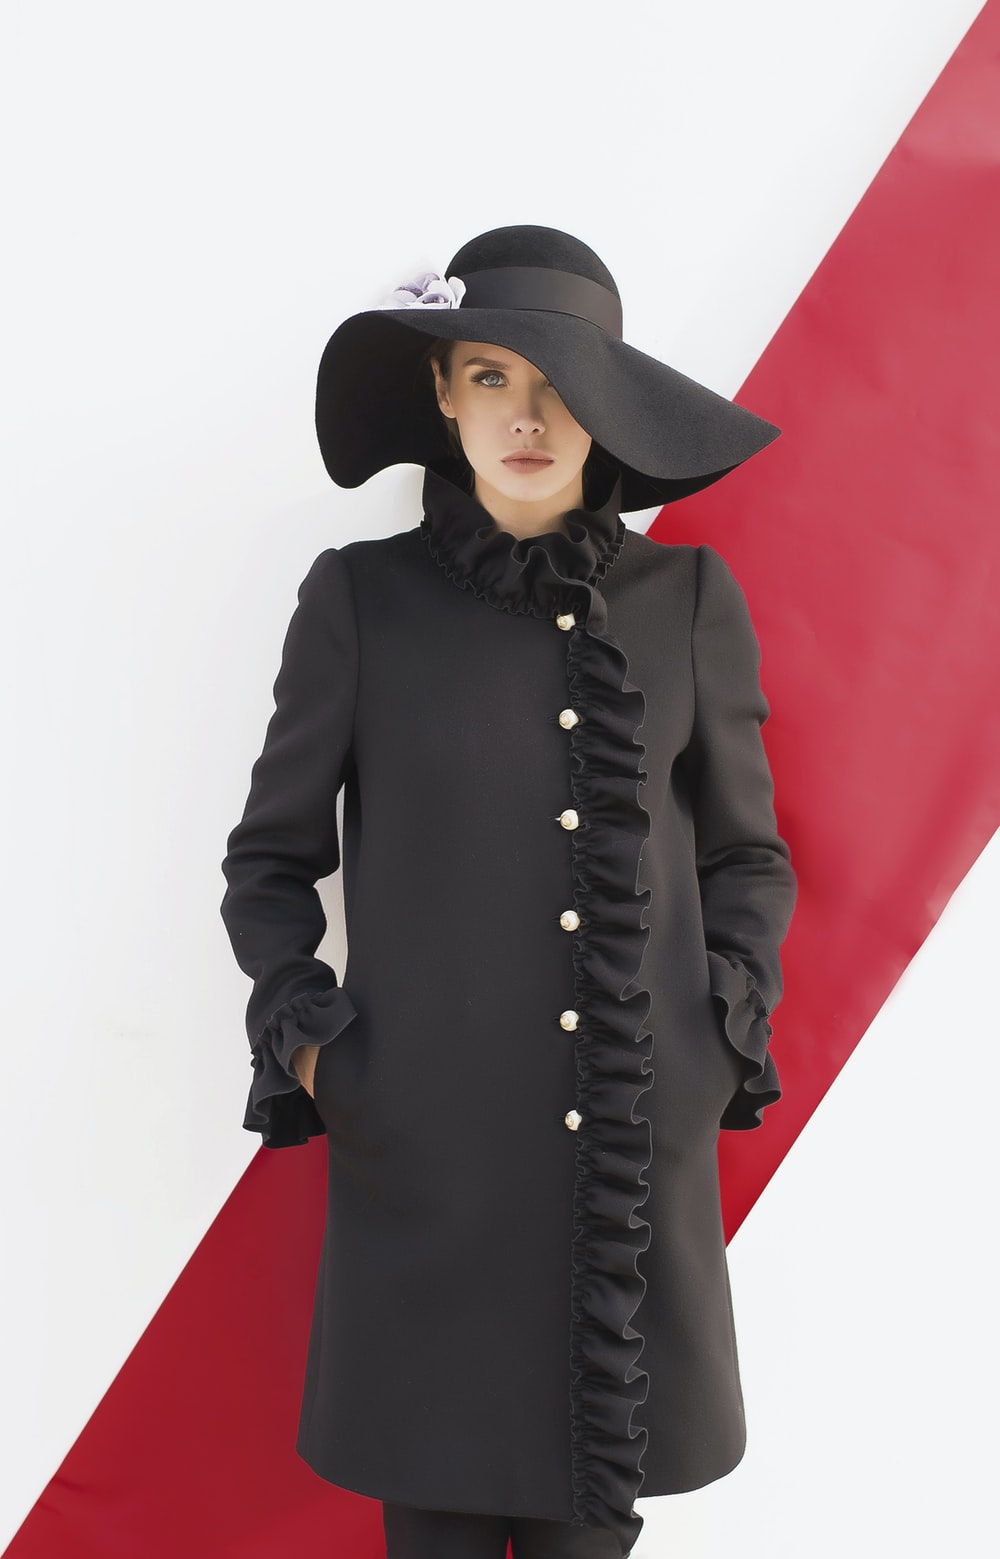 woman wearing black long-sleeved dress and black sunhat